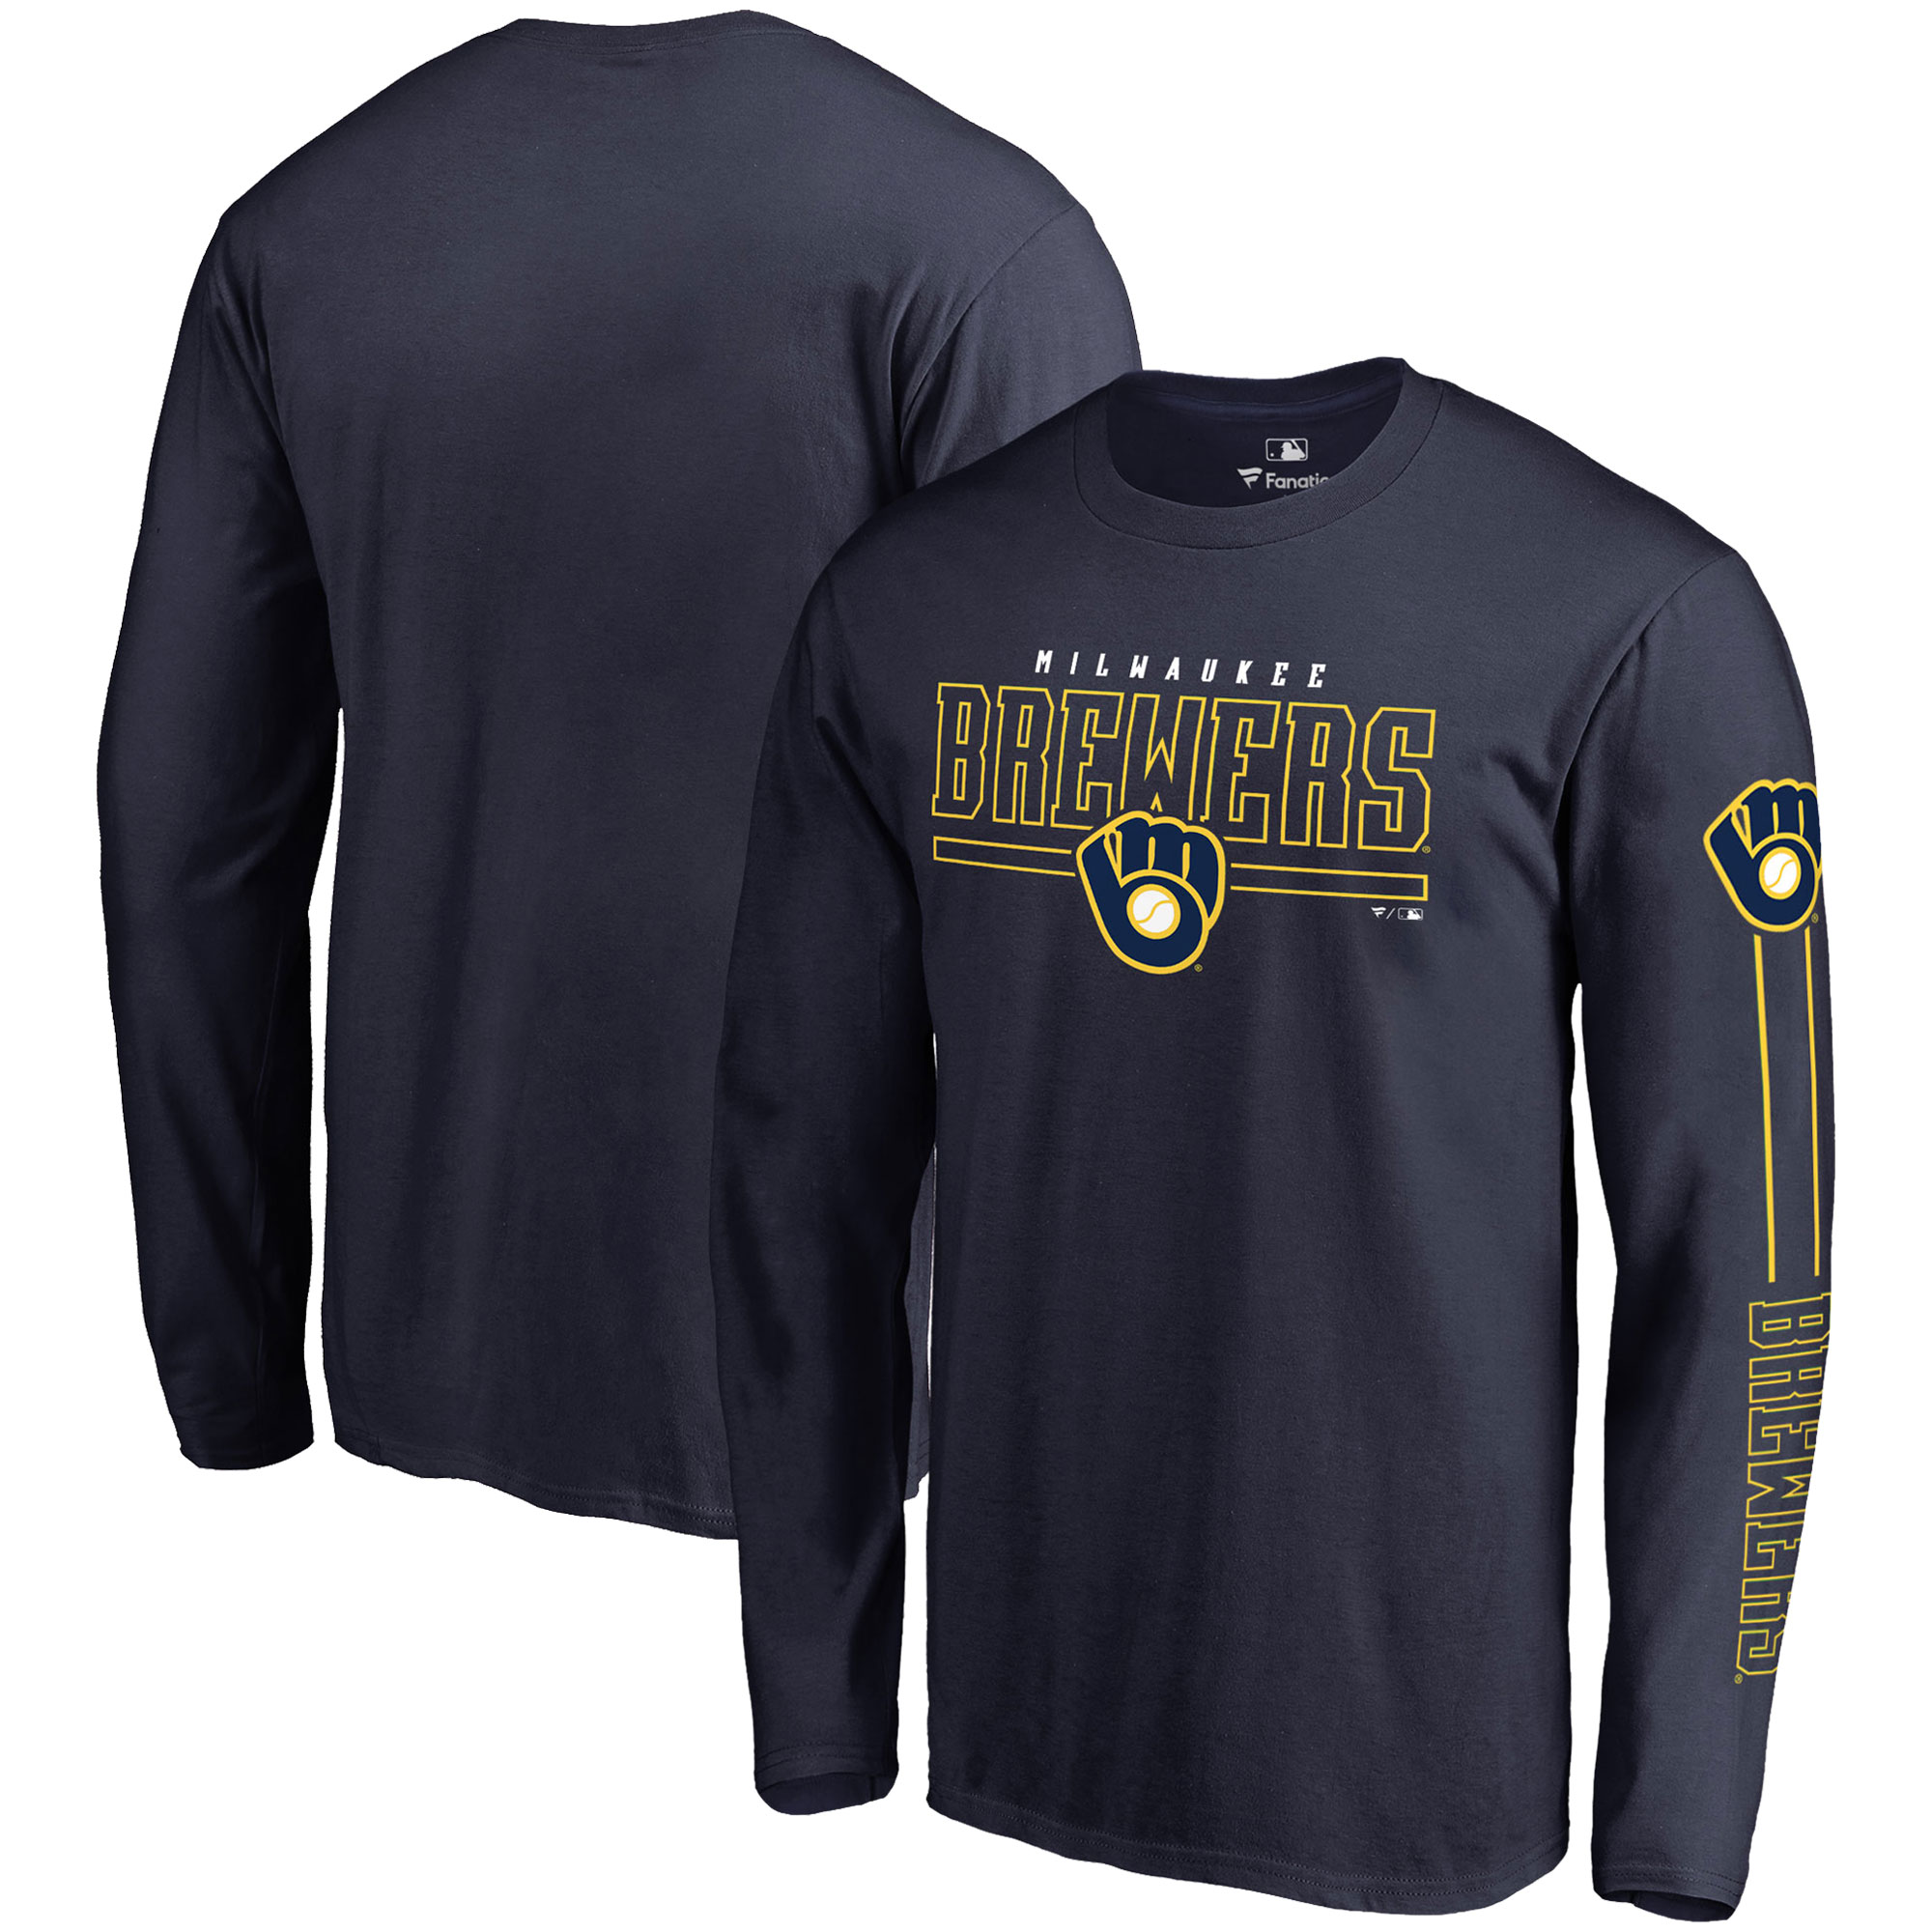 Milwaukee Brewers Fanatics Branded Front Line Long Sleeve T-Shirt - Navy